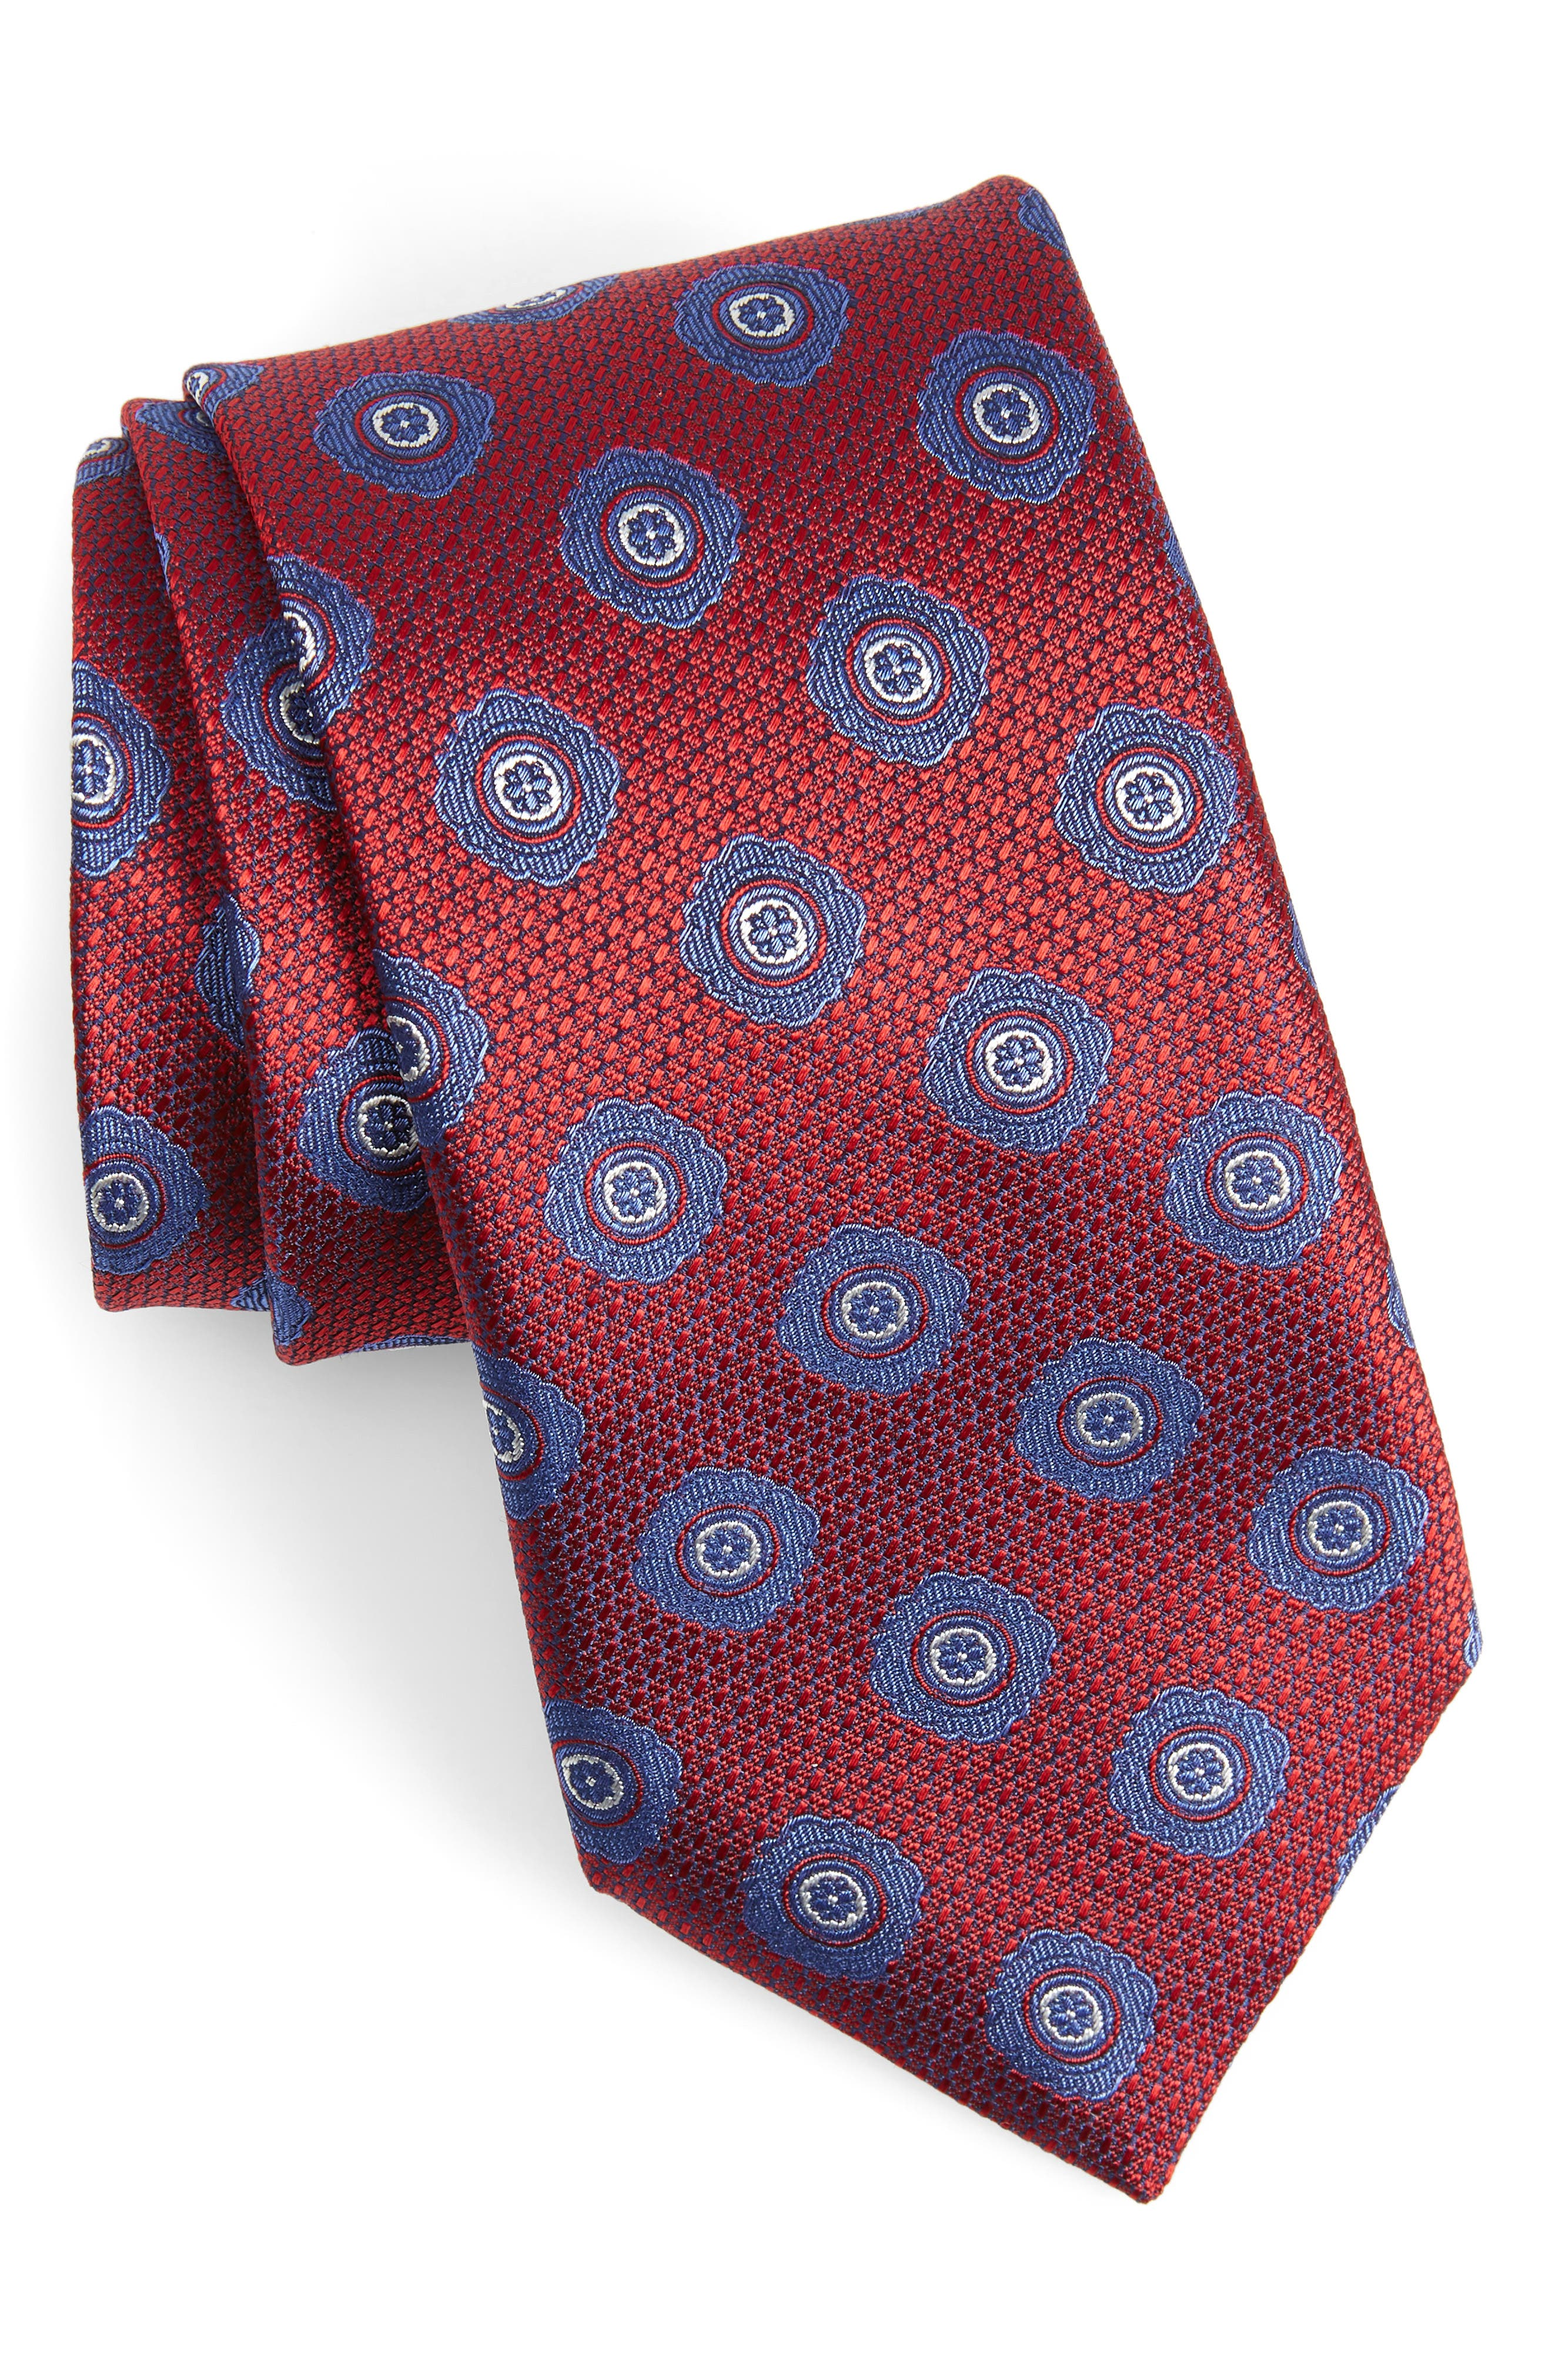 CANALI, Medallion Silk X-Long Tie, Main thumbnail 1, color, RED